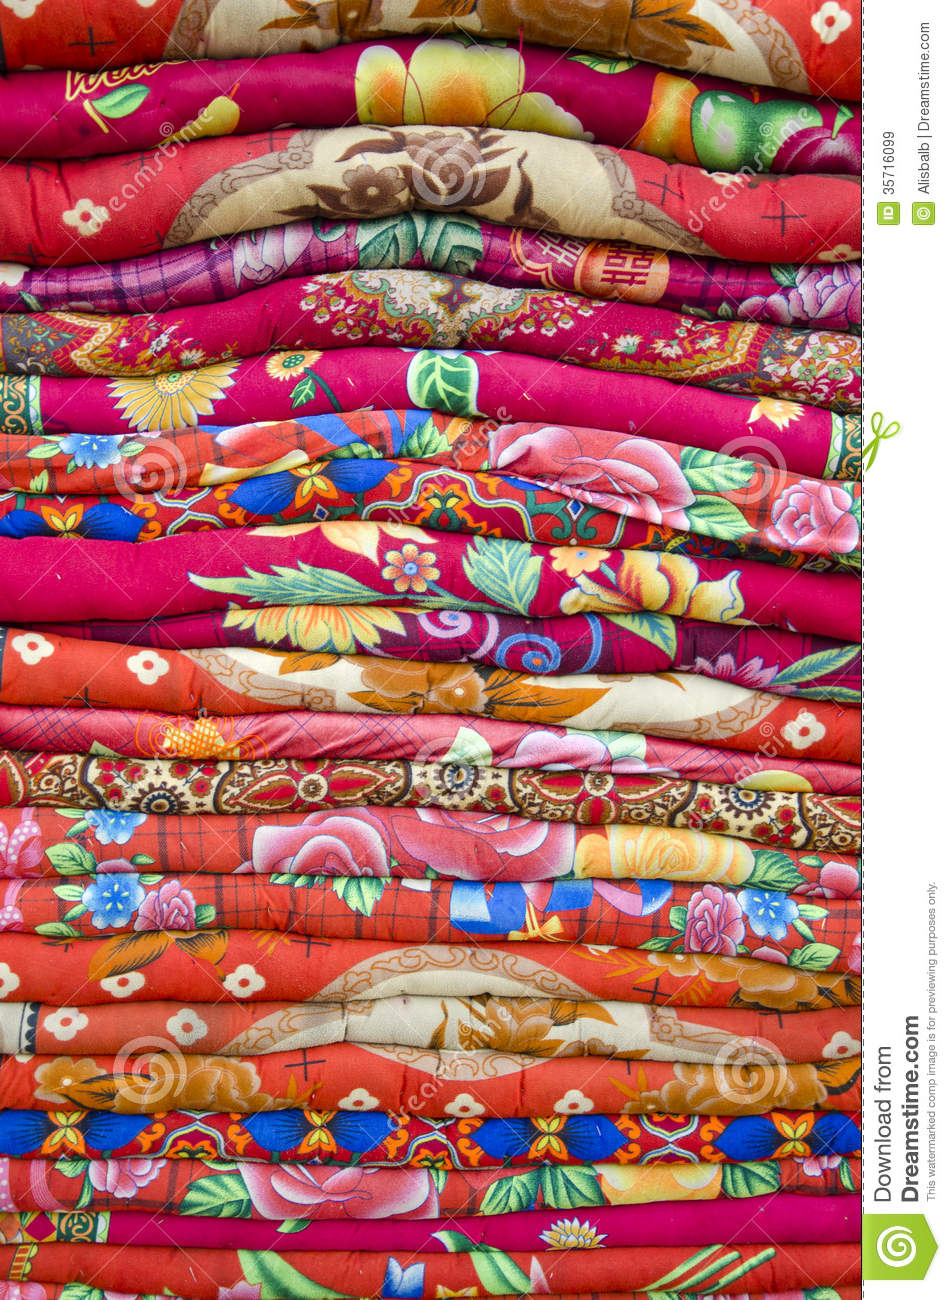 Colorful Bed Sheets Bedding Objects In Asia Market Stock Image ...